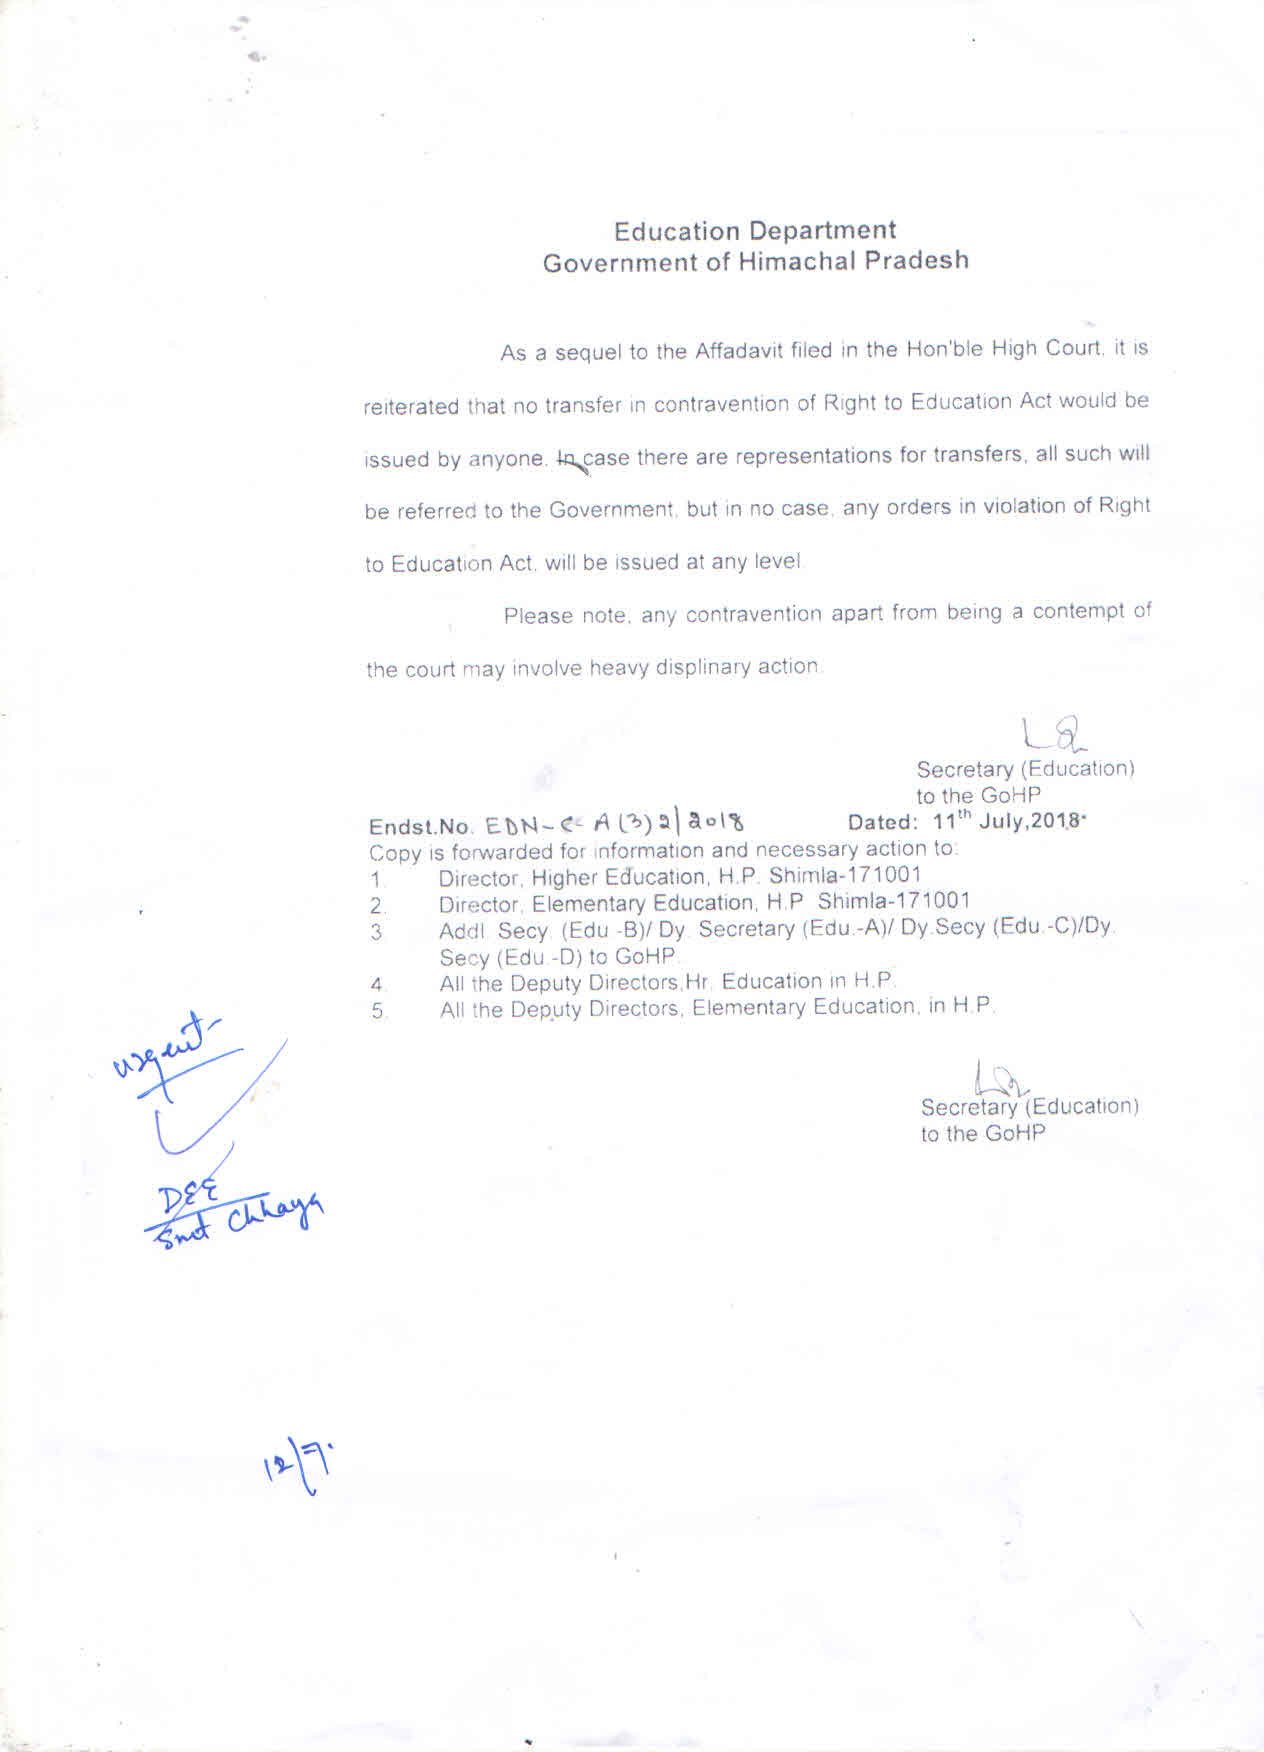 Latest Updates - Elementary Education Department, Government